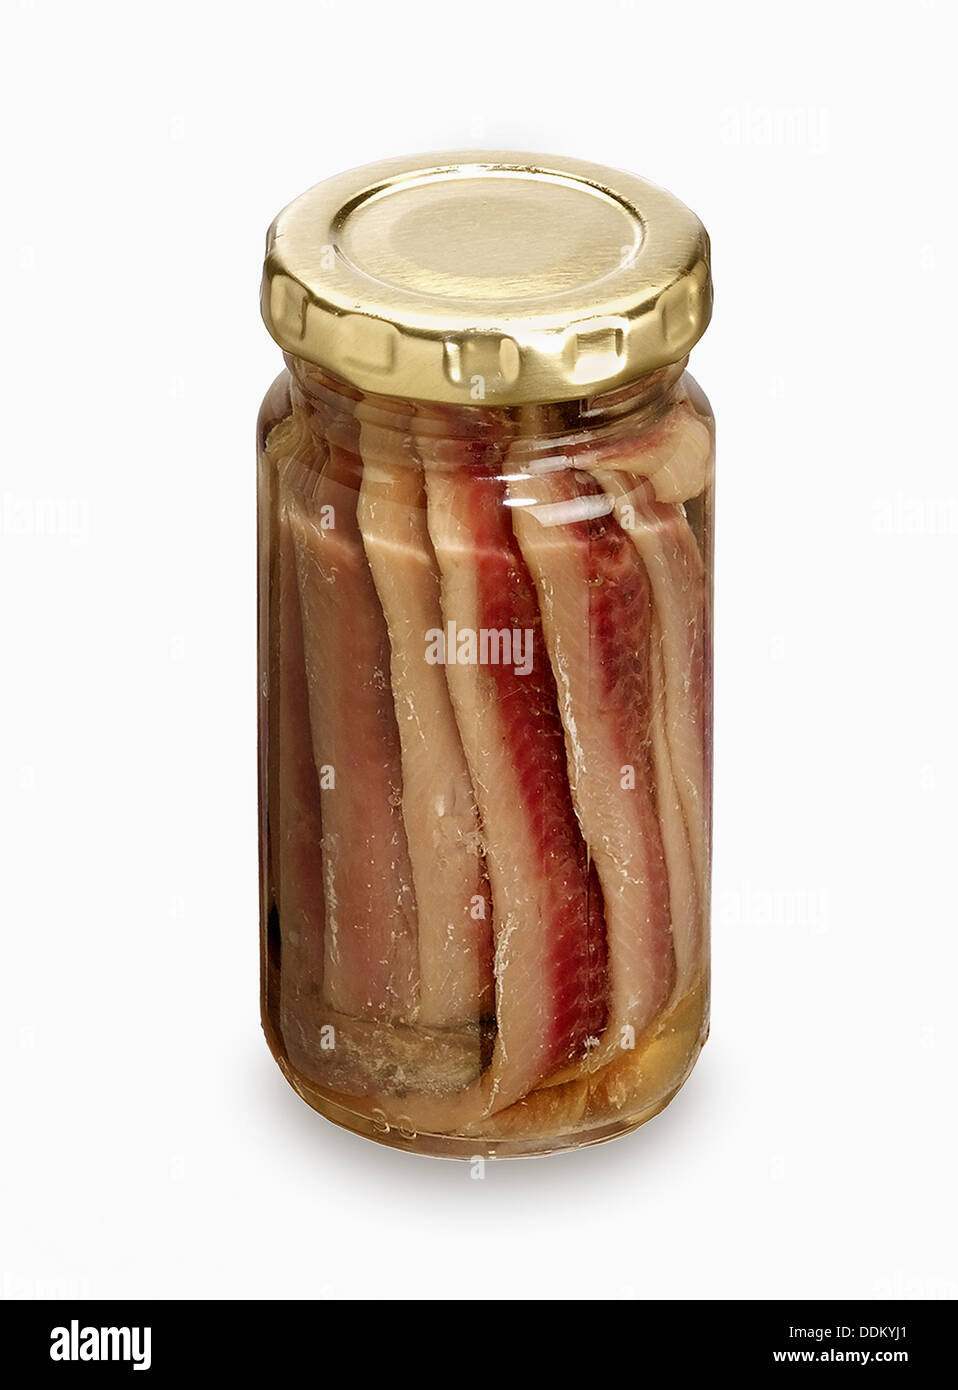 Anchovies - Stock Image